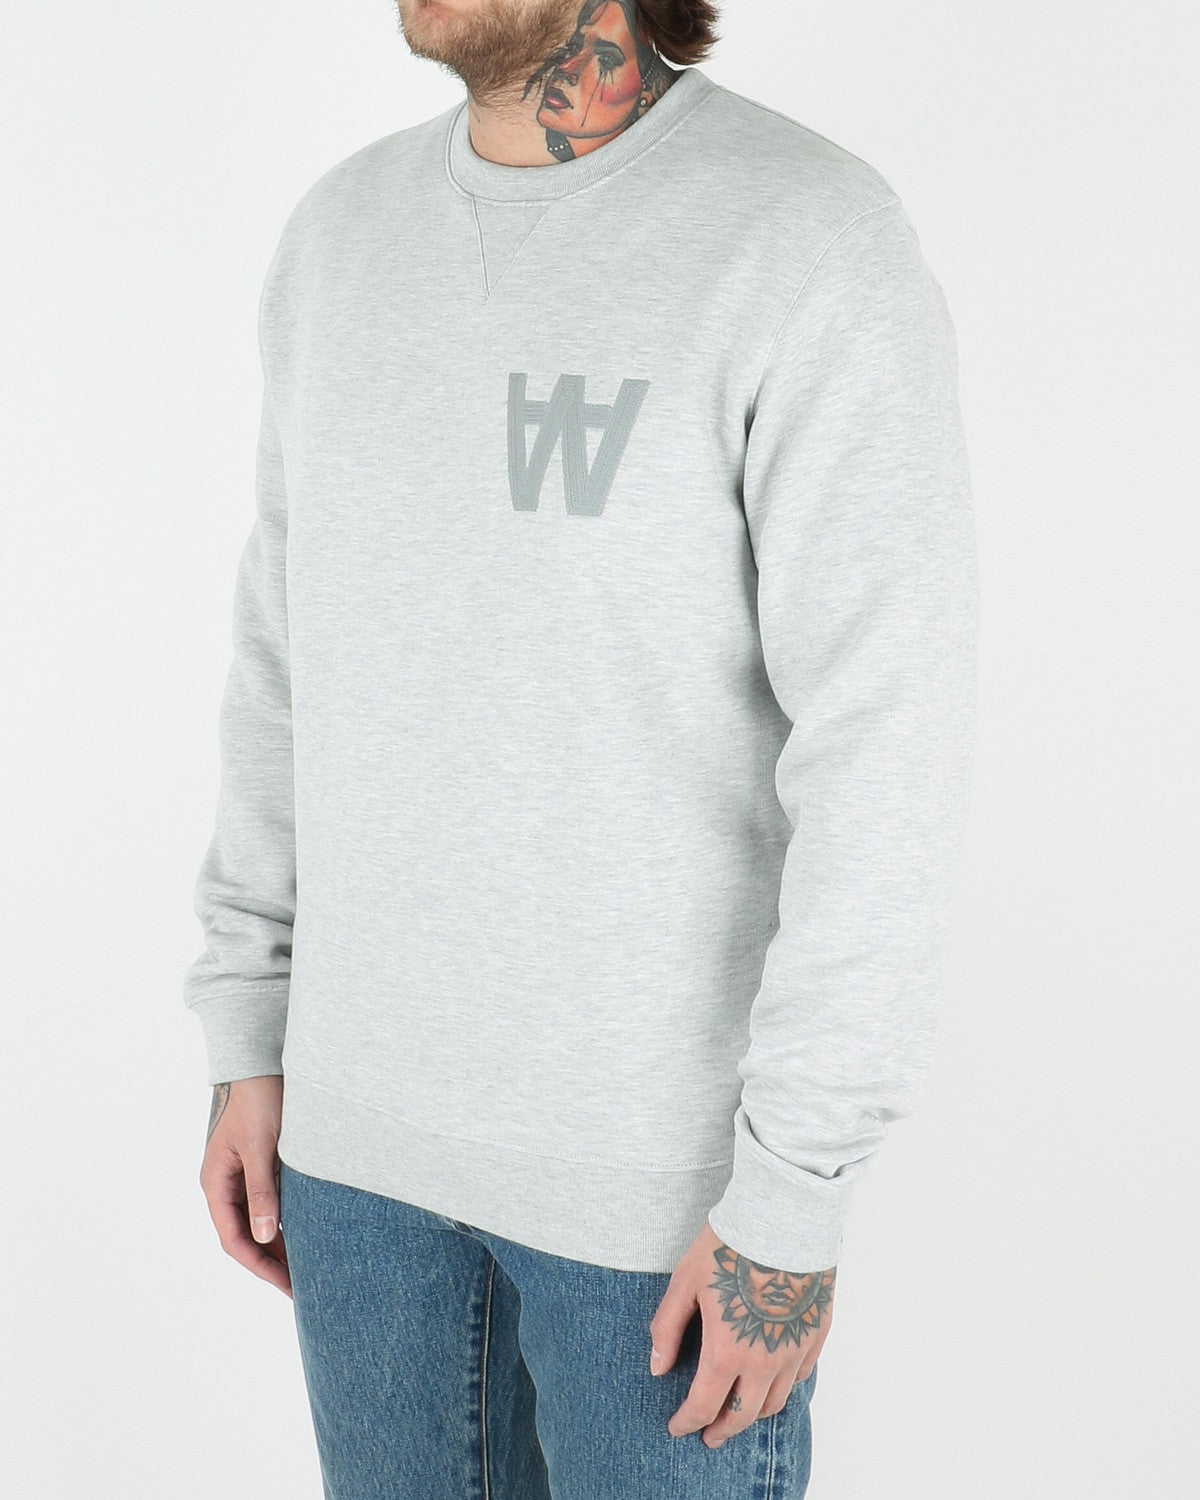 wood wood_houston sweatshirt_grey melange_view_2_3